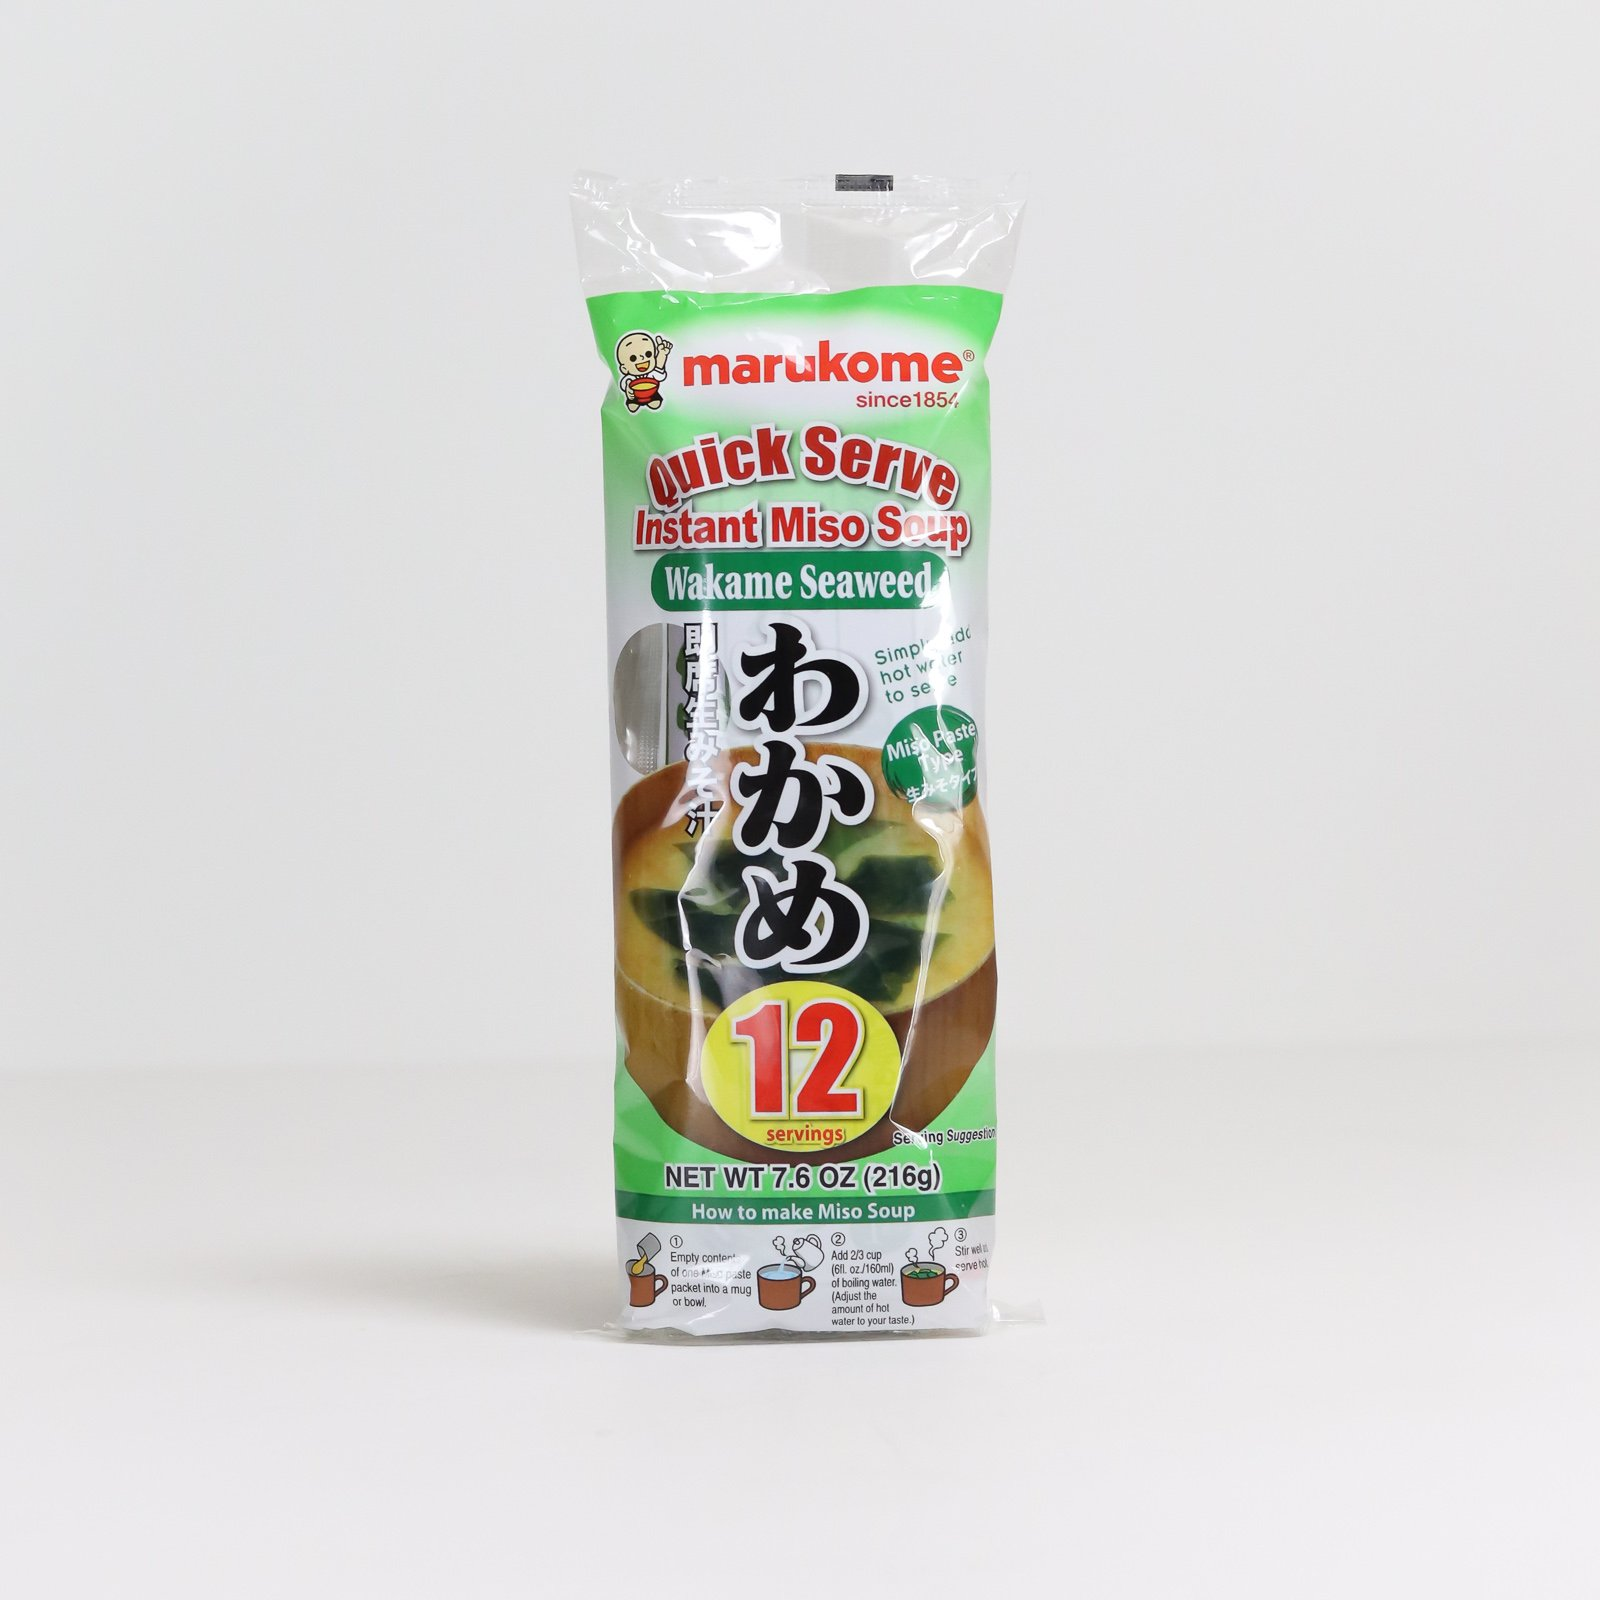 Marukome Instant Miso Soup with seaweed (12 servings)